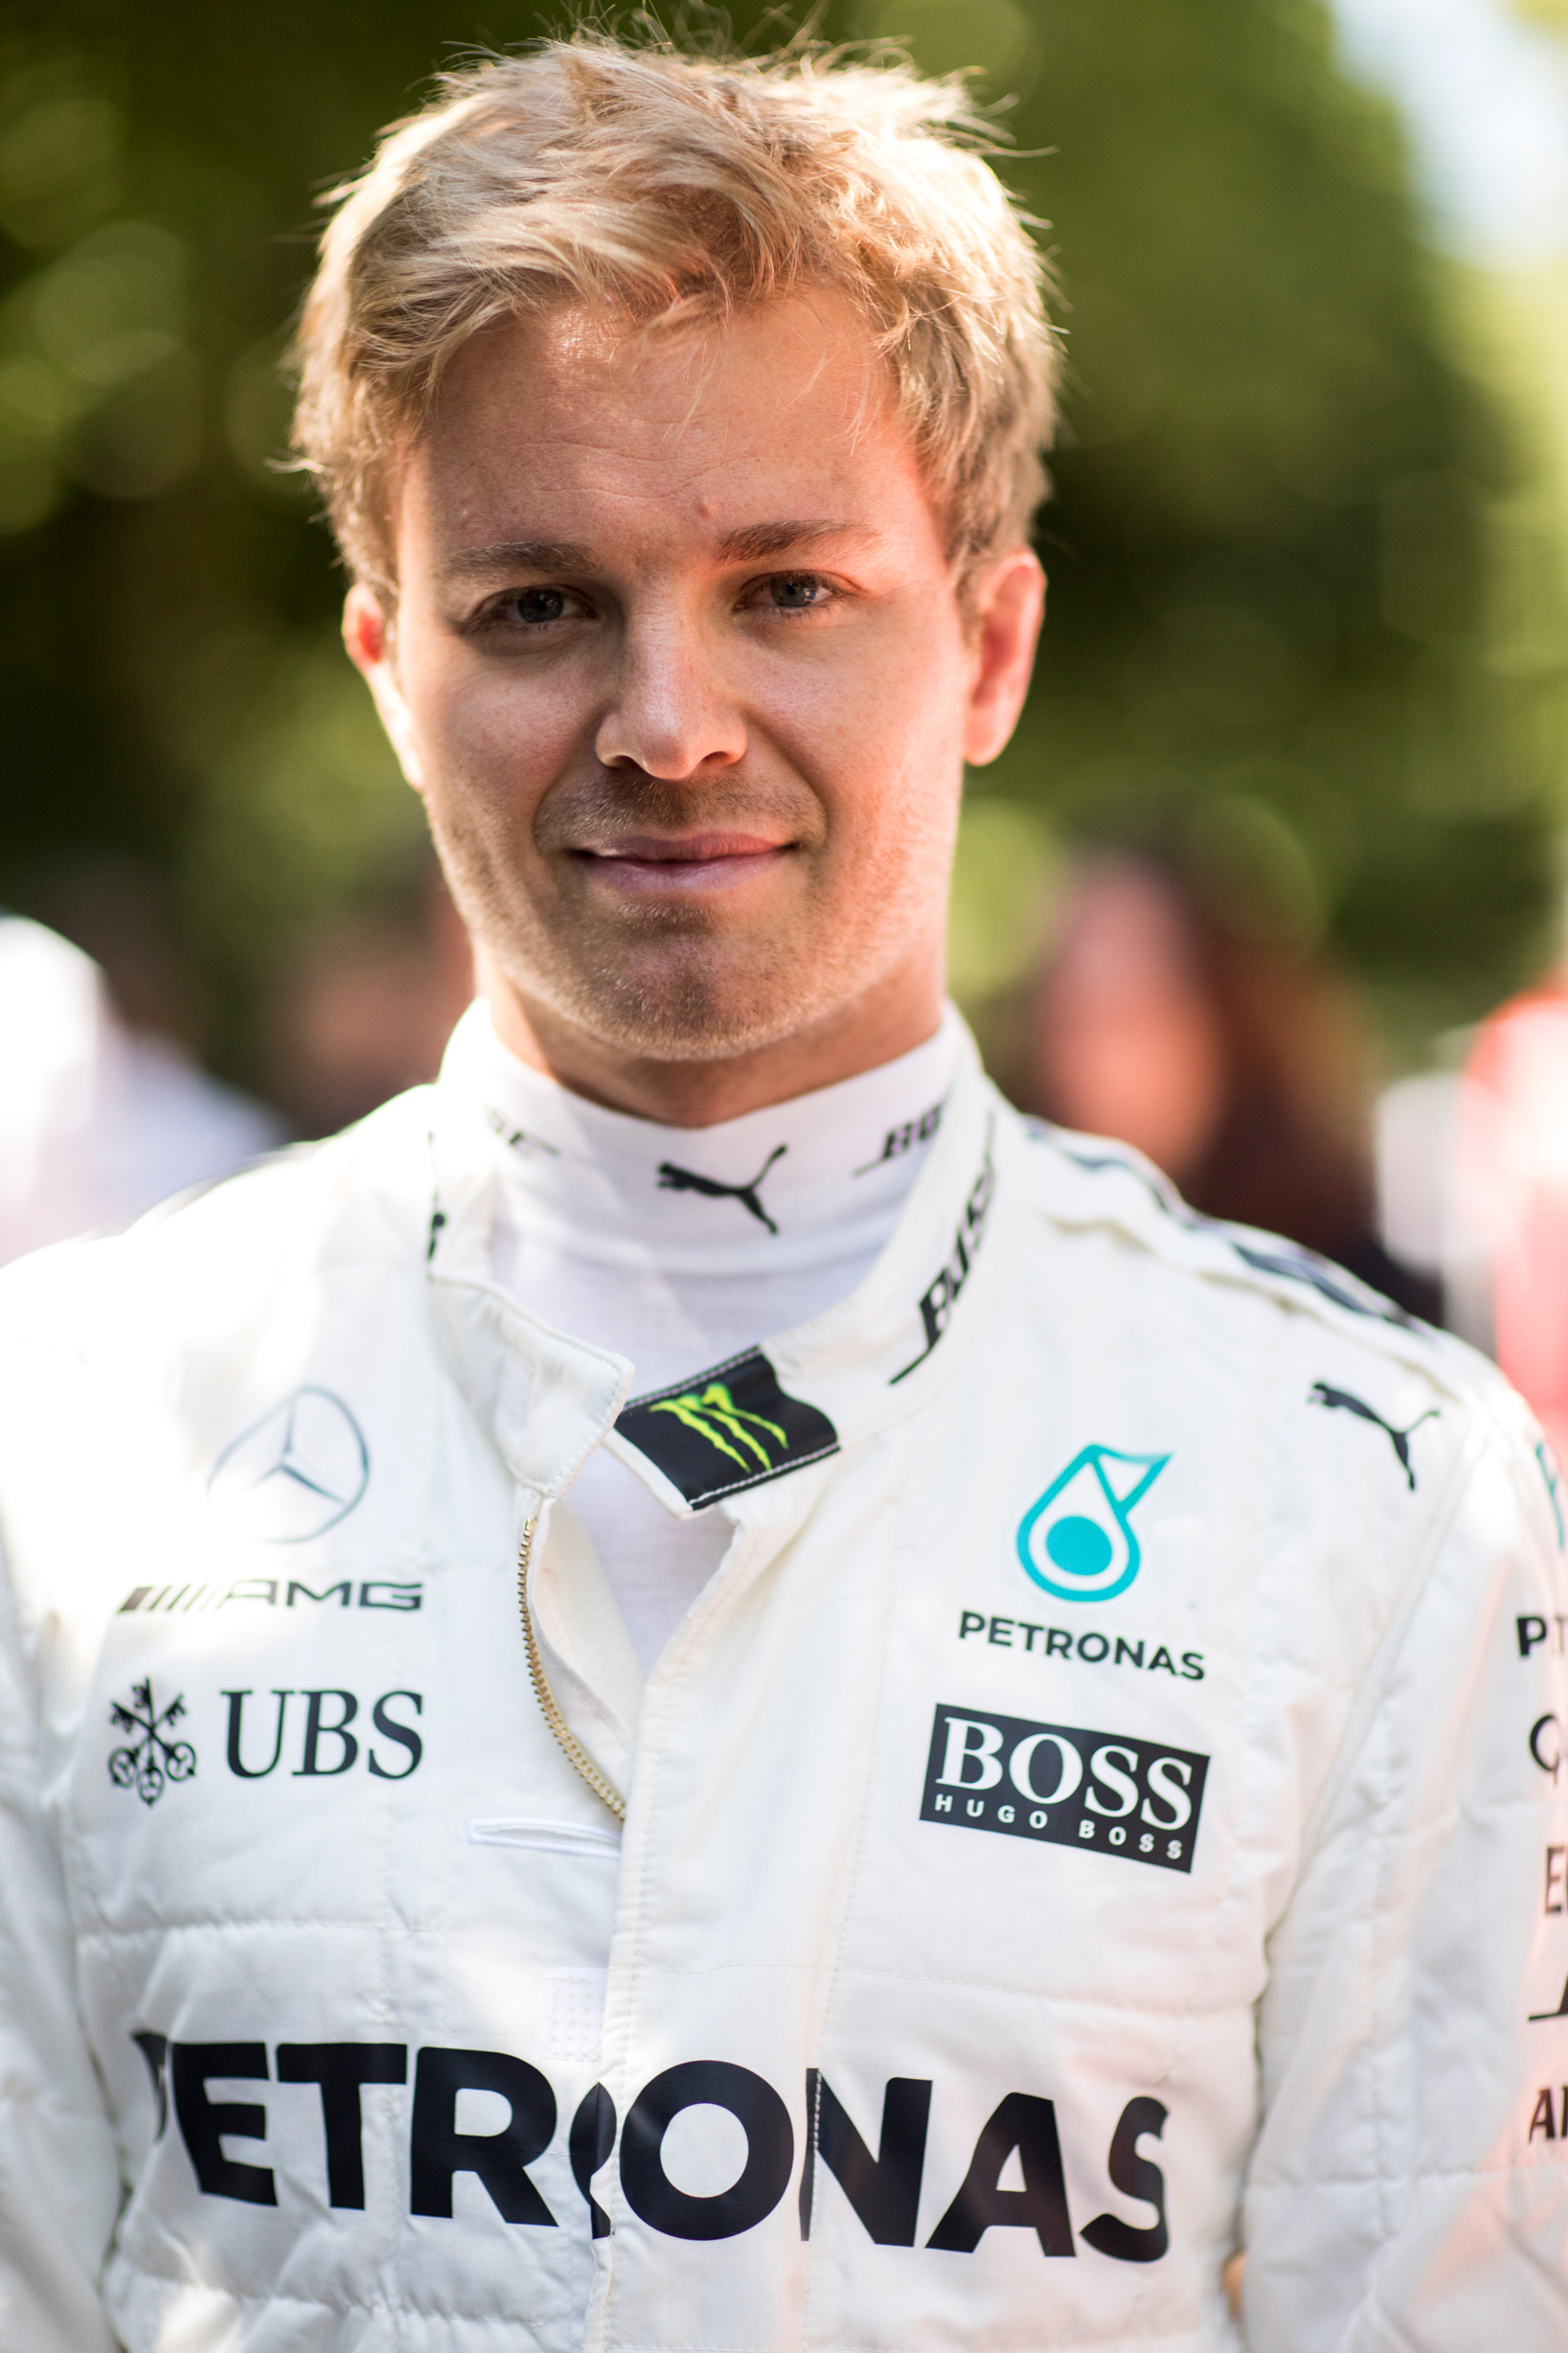 nico rosberg f1 driver portrait from fos 2017